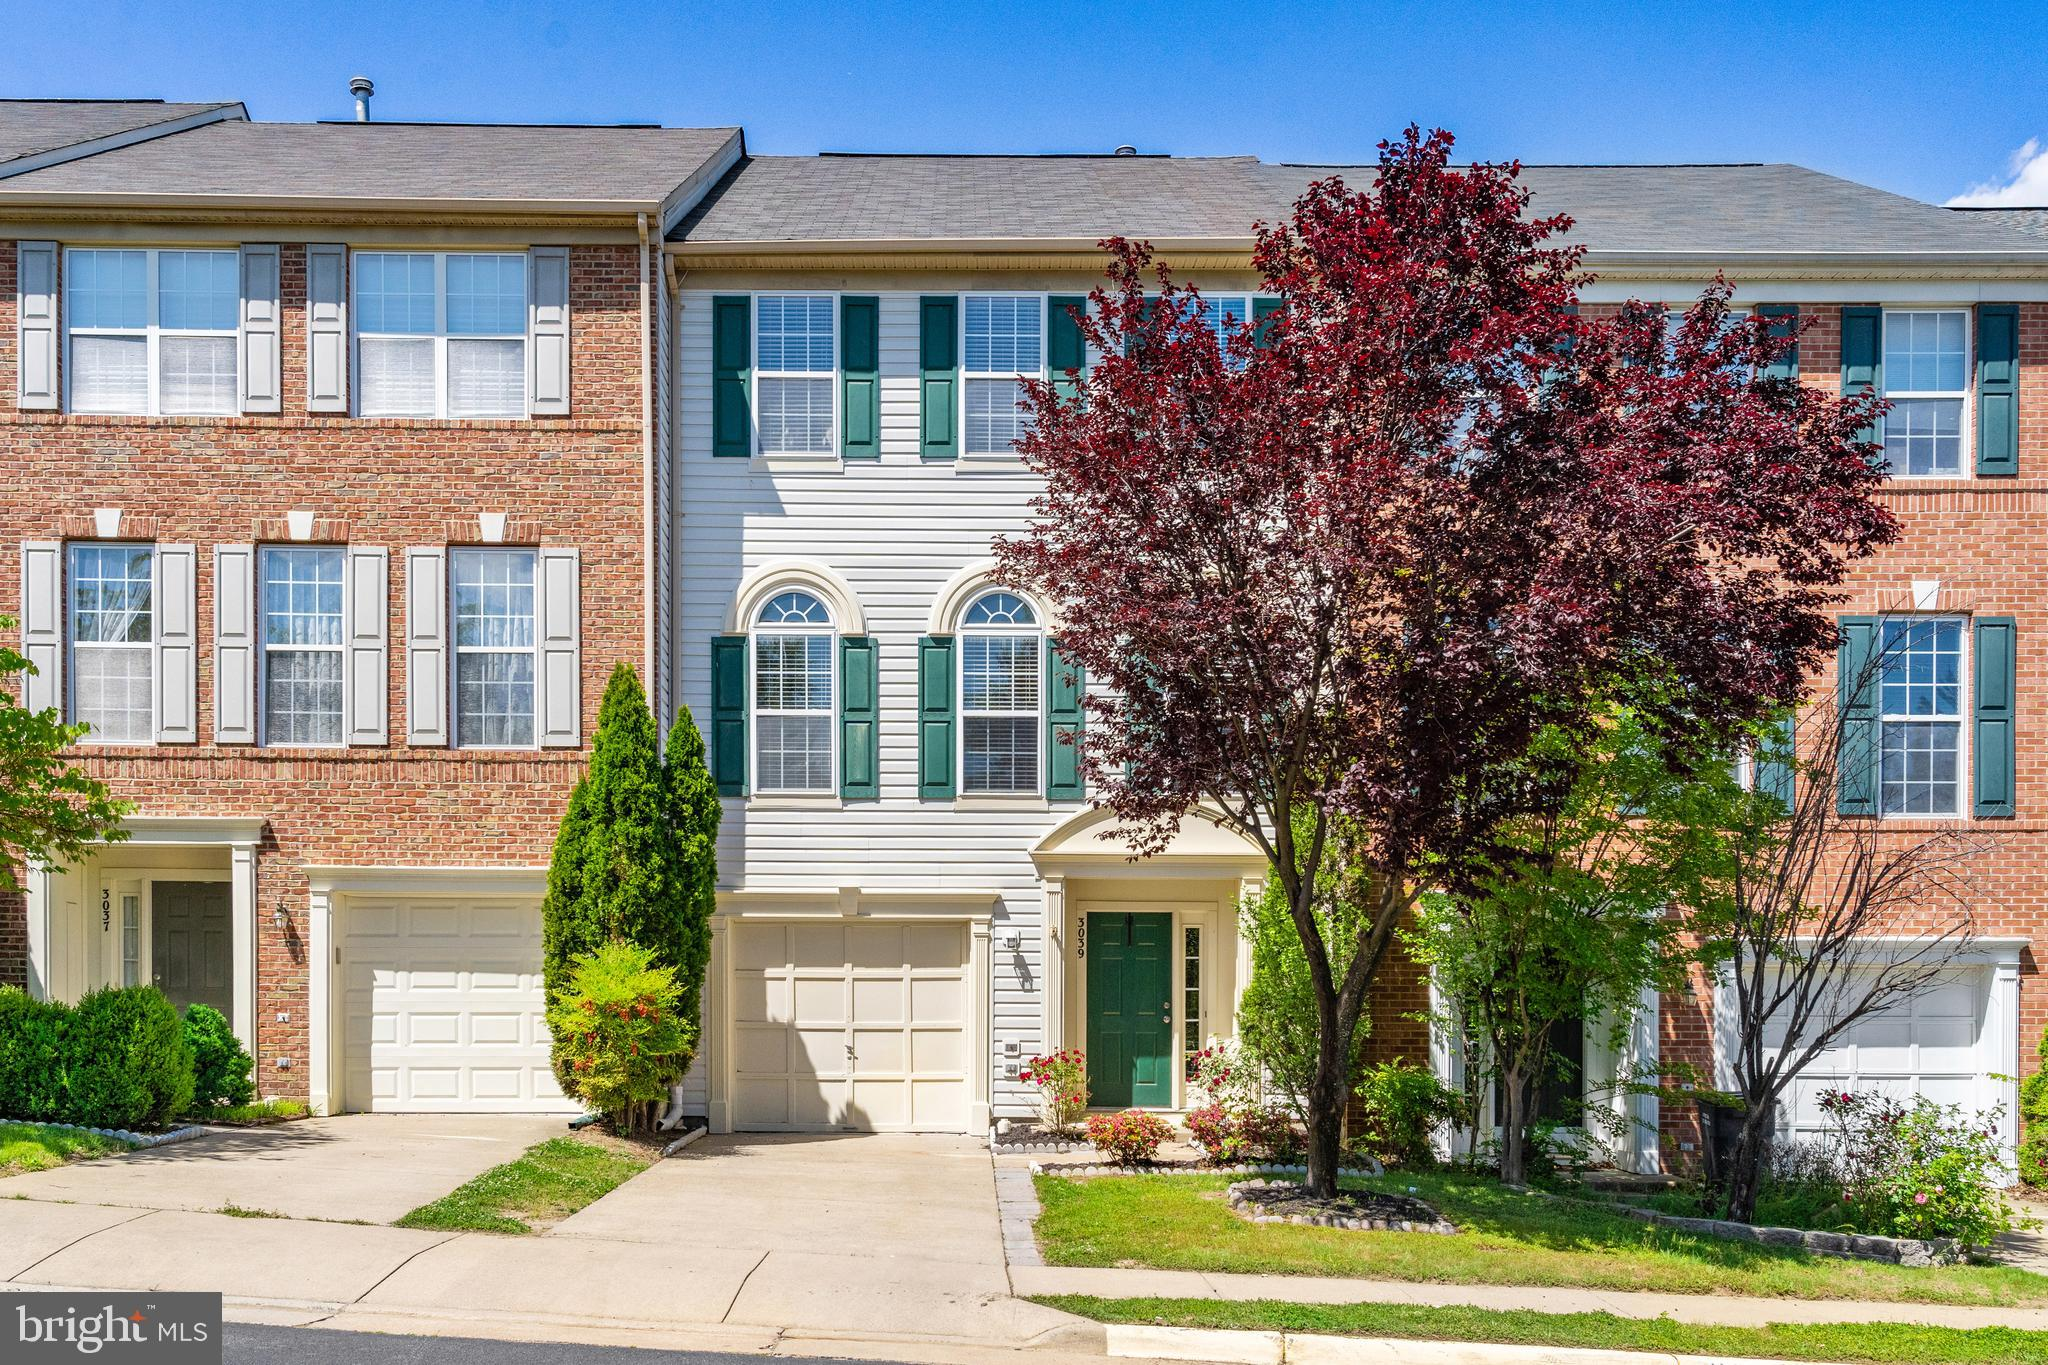 3 Bedroom 2 Full and 2 Half Baths. 3 level townhome walks into foyer, large lower-level rec room off